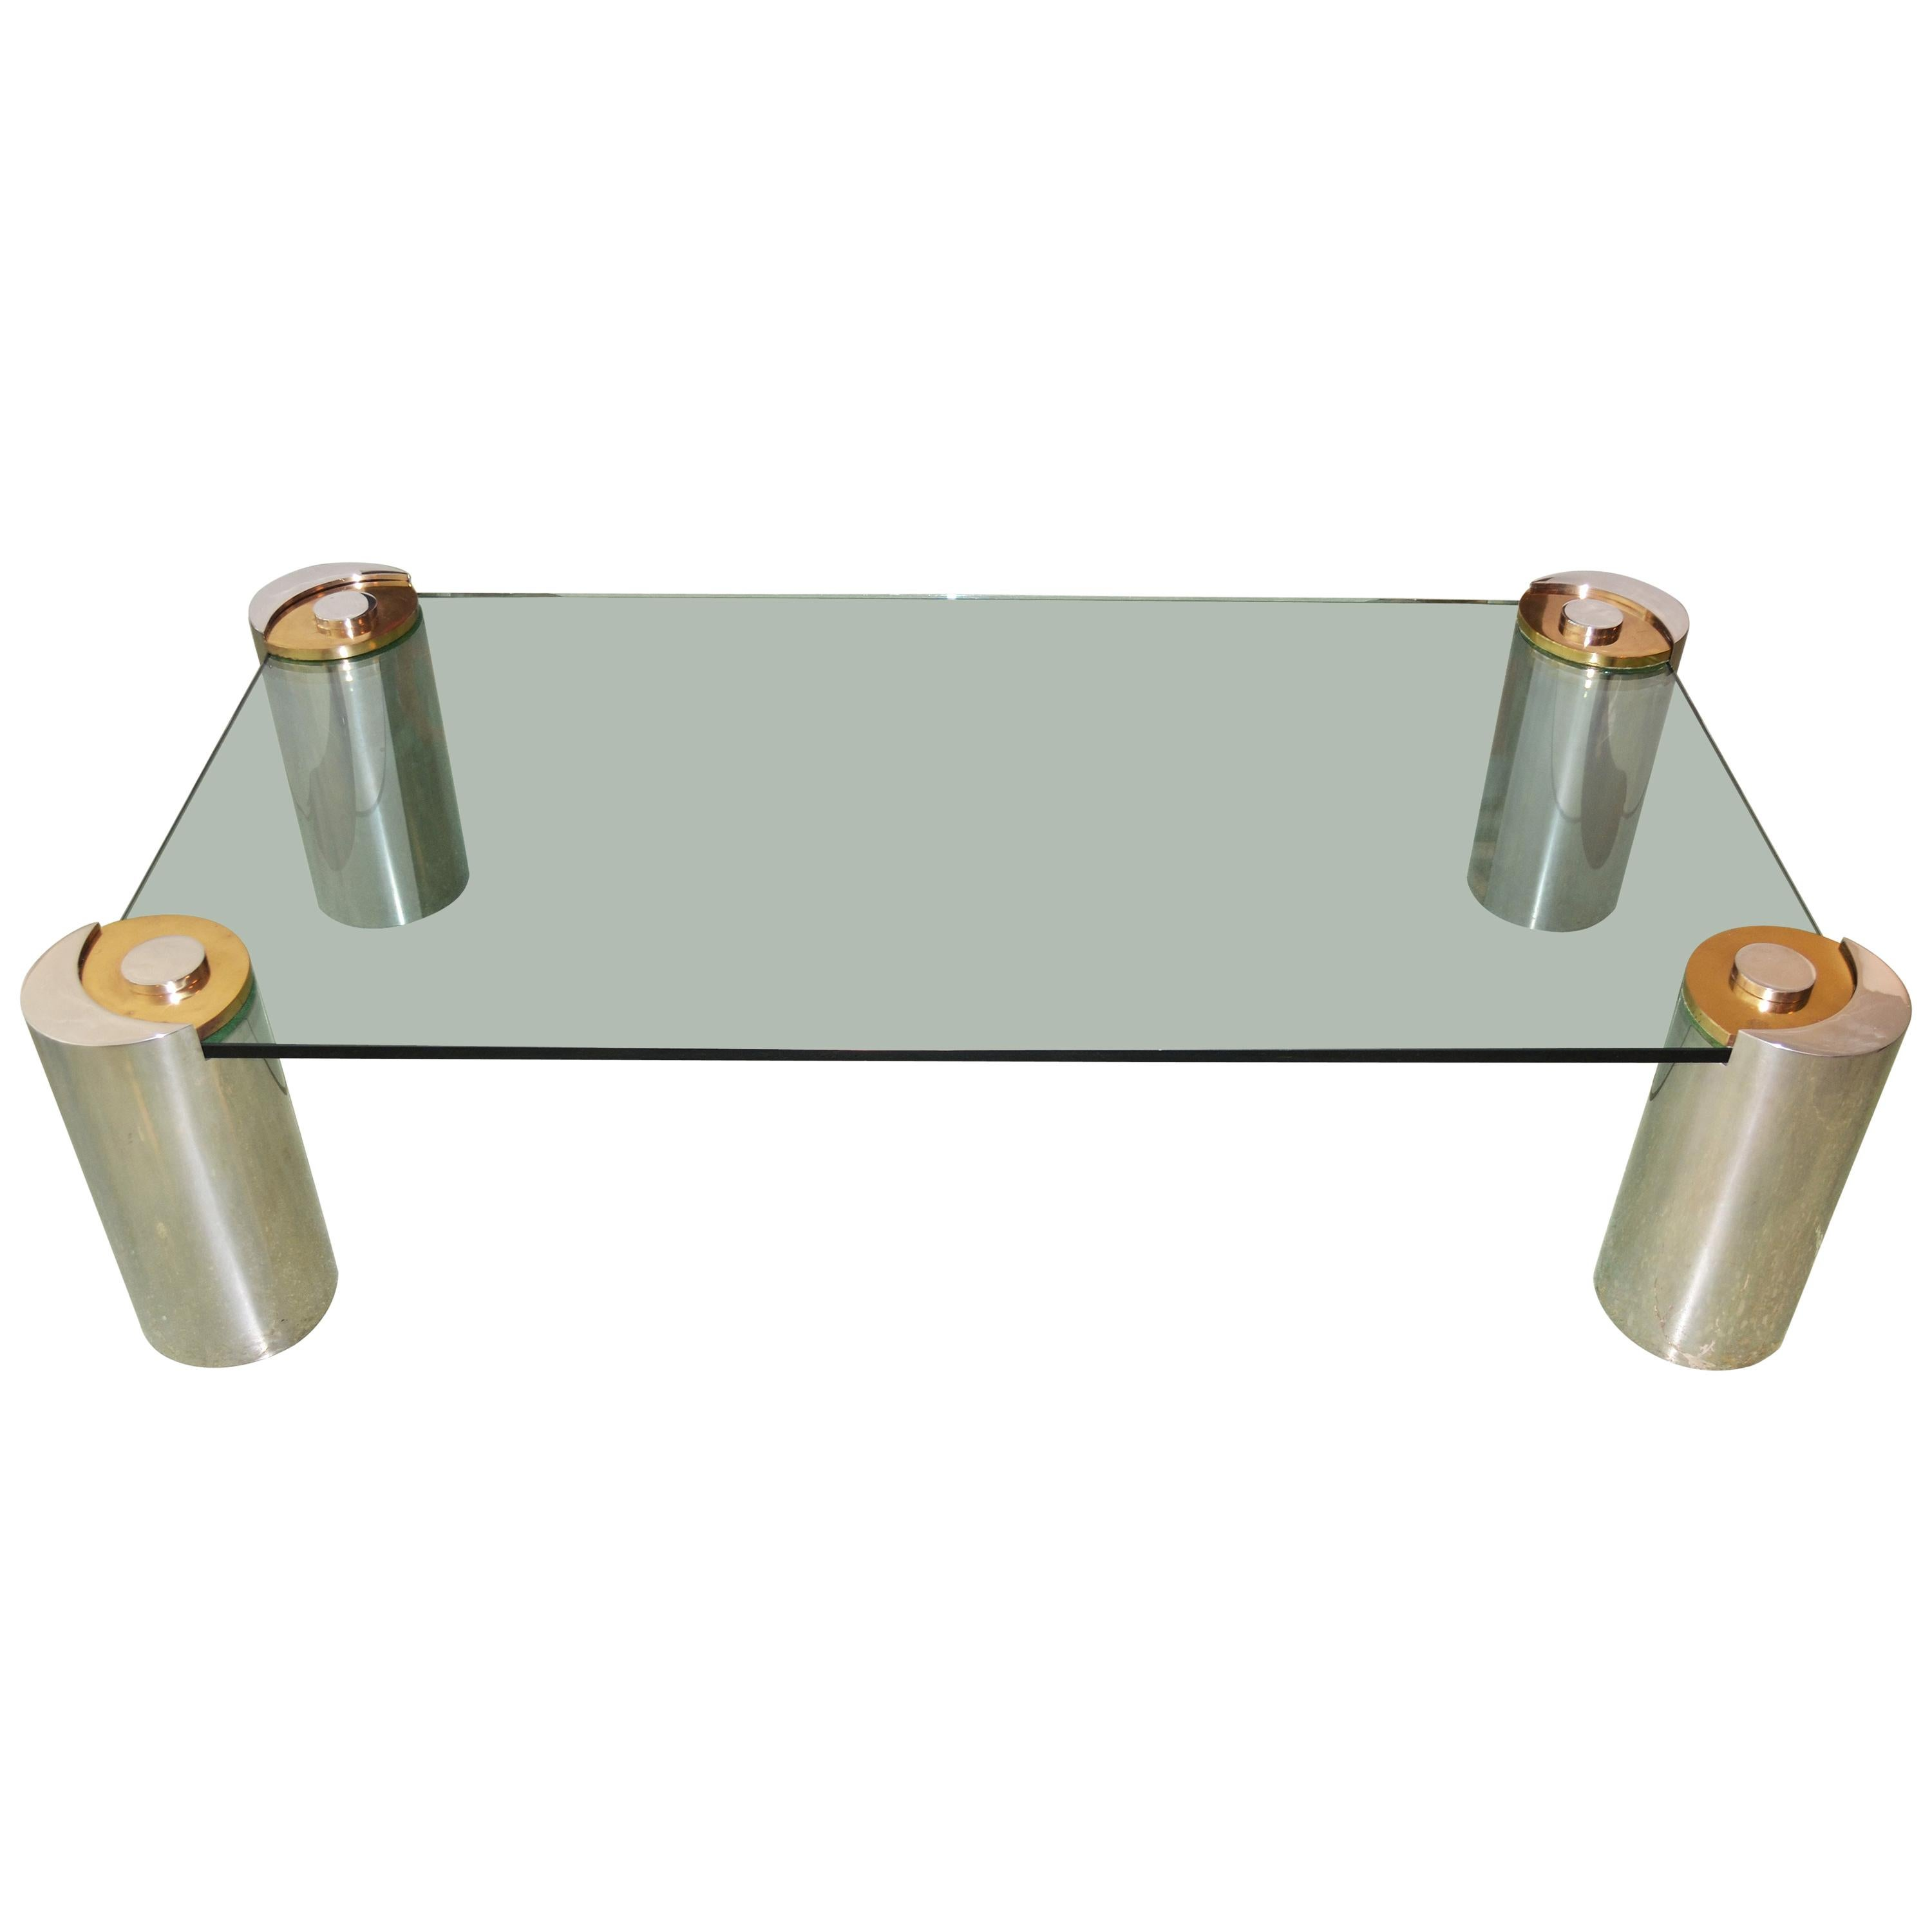 Coffee Table Sculpture Leg by Karl Springer in Chrome & Brass